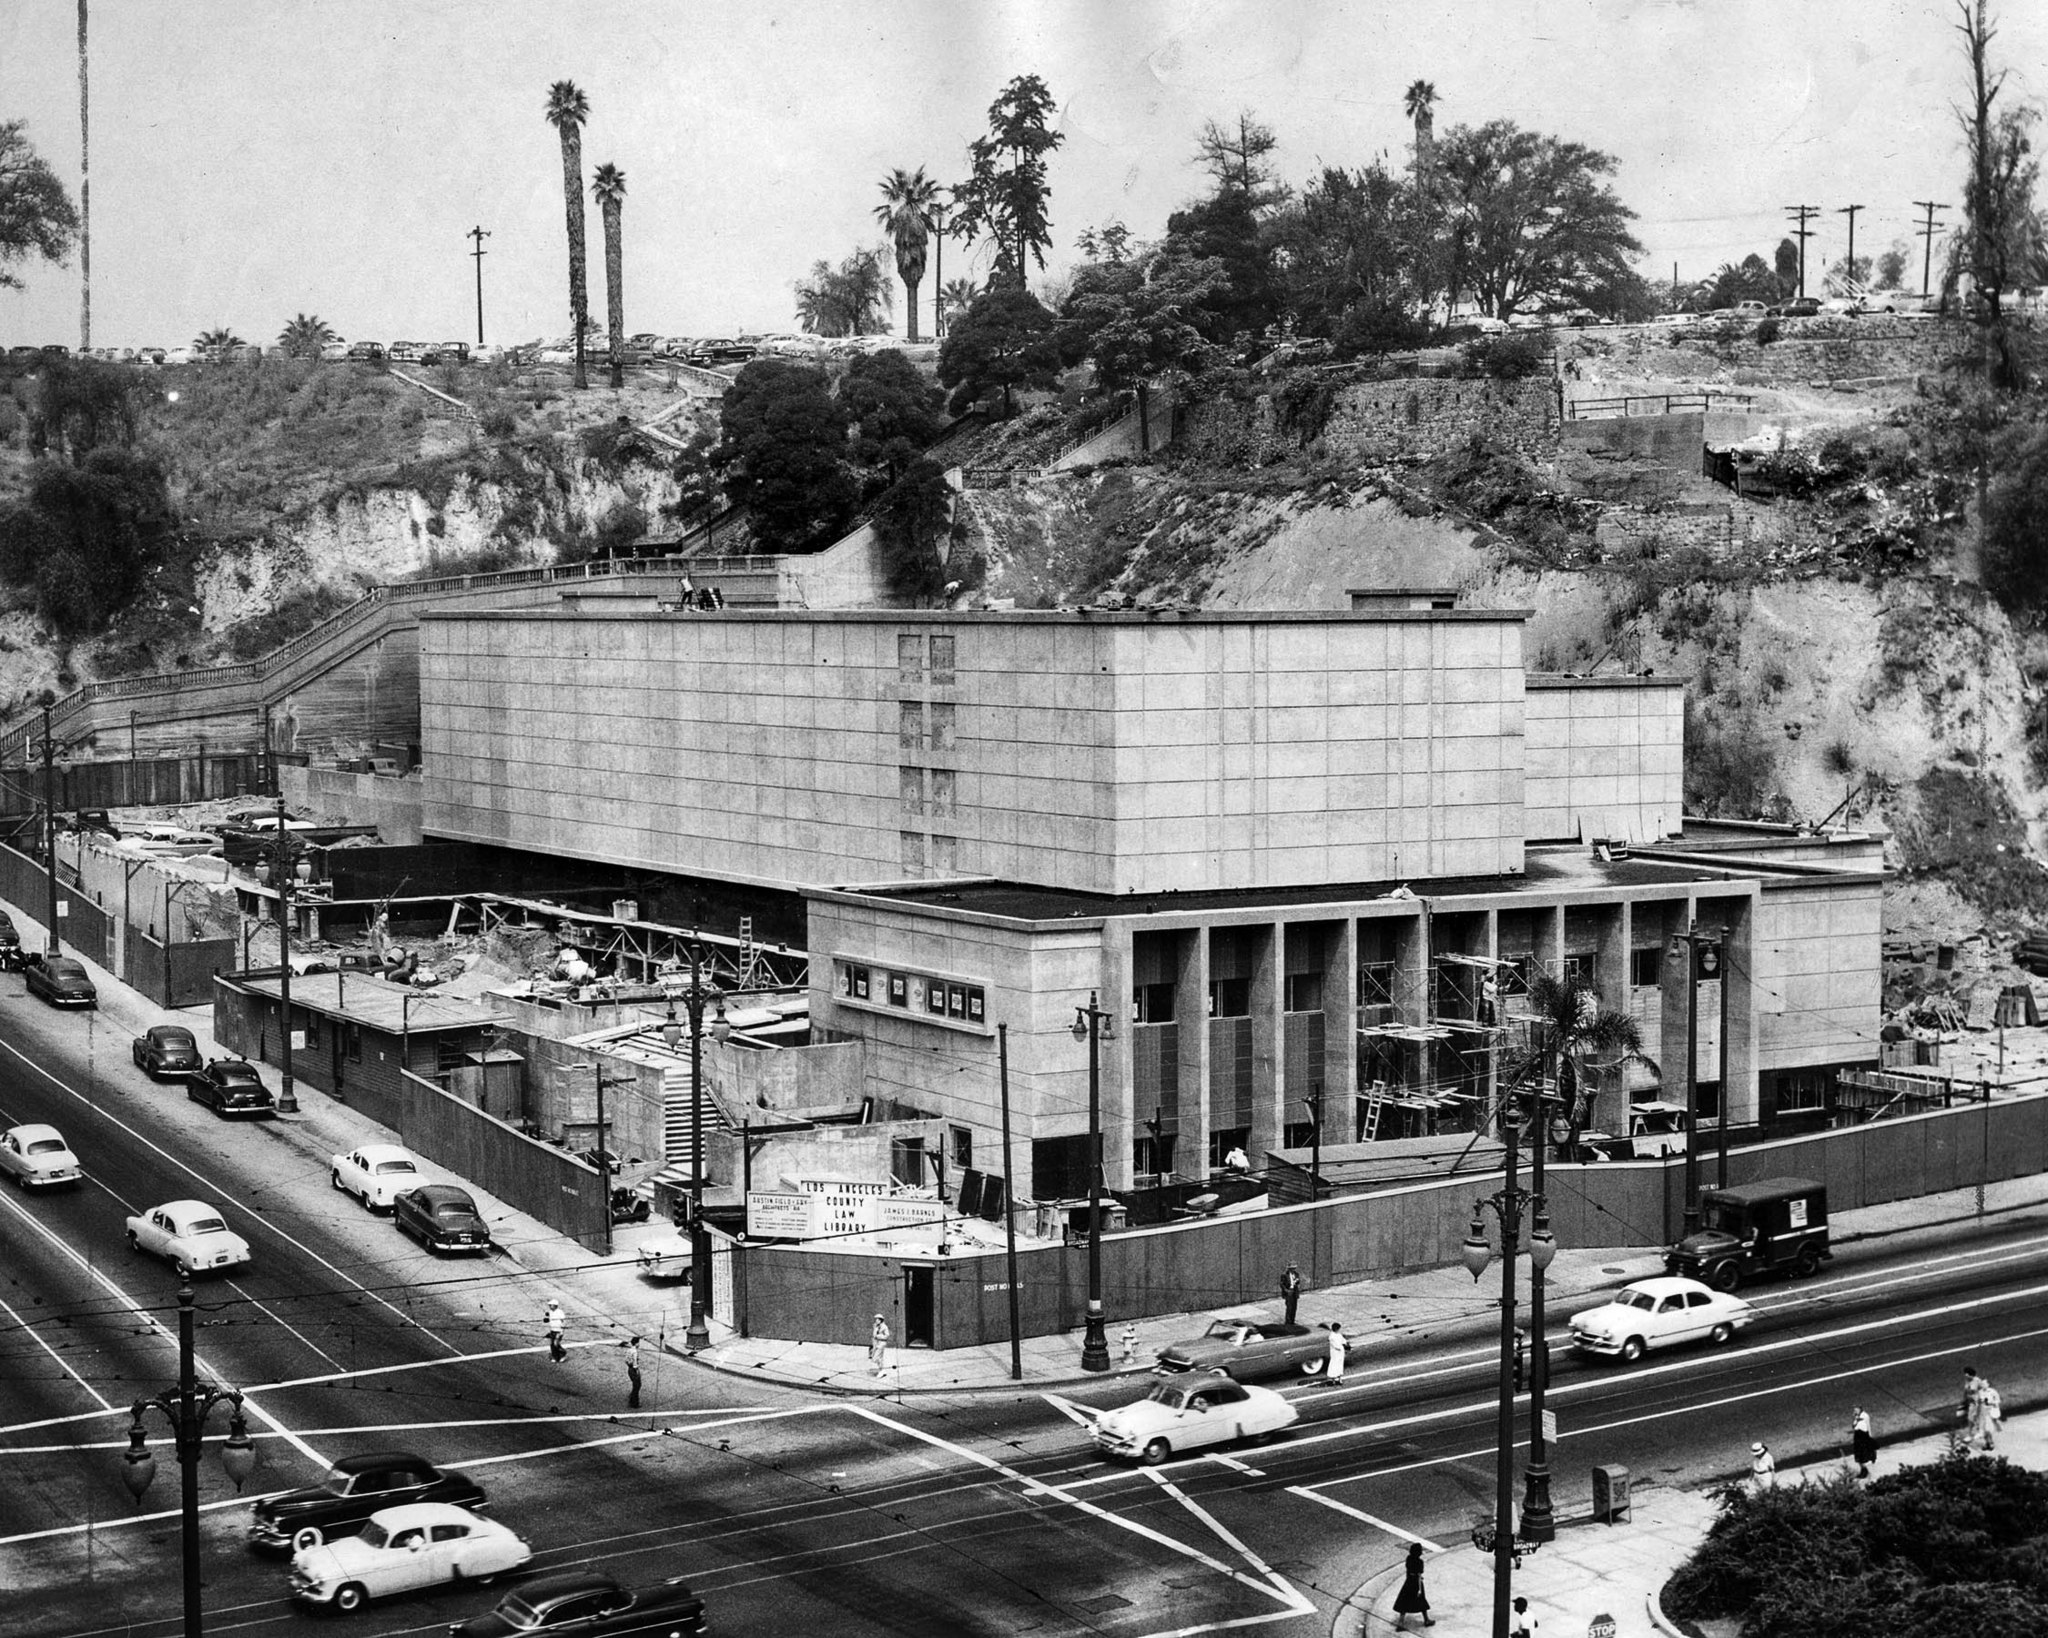 1953: The Los Angeles County Law Library at 1st St. and Broadway near completion. This photo was pub